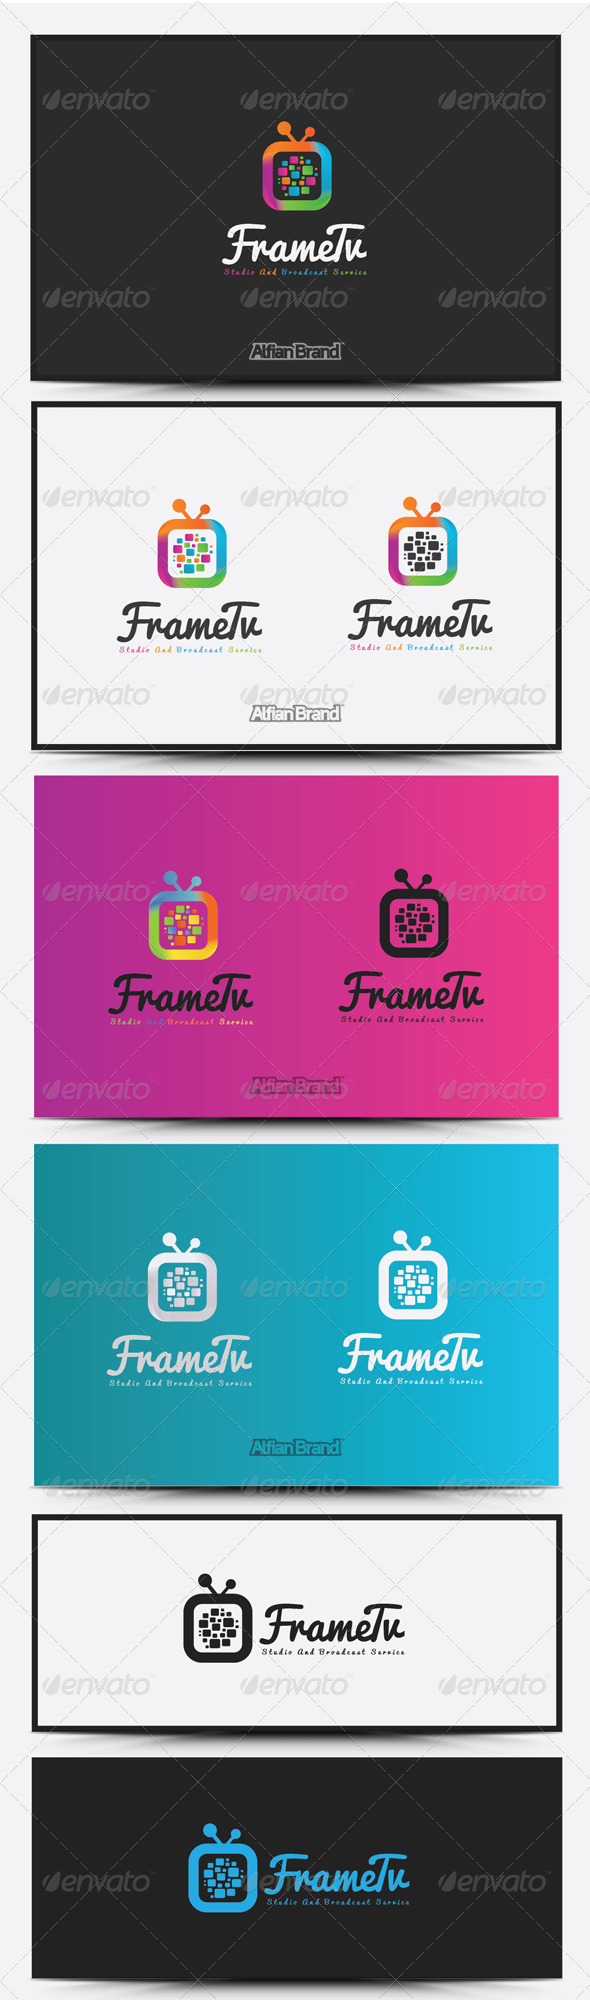 GraphicRiver Frame Tv Logo 8516567